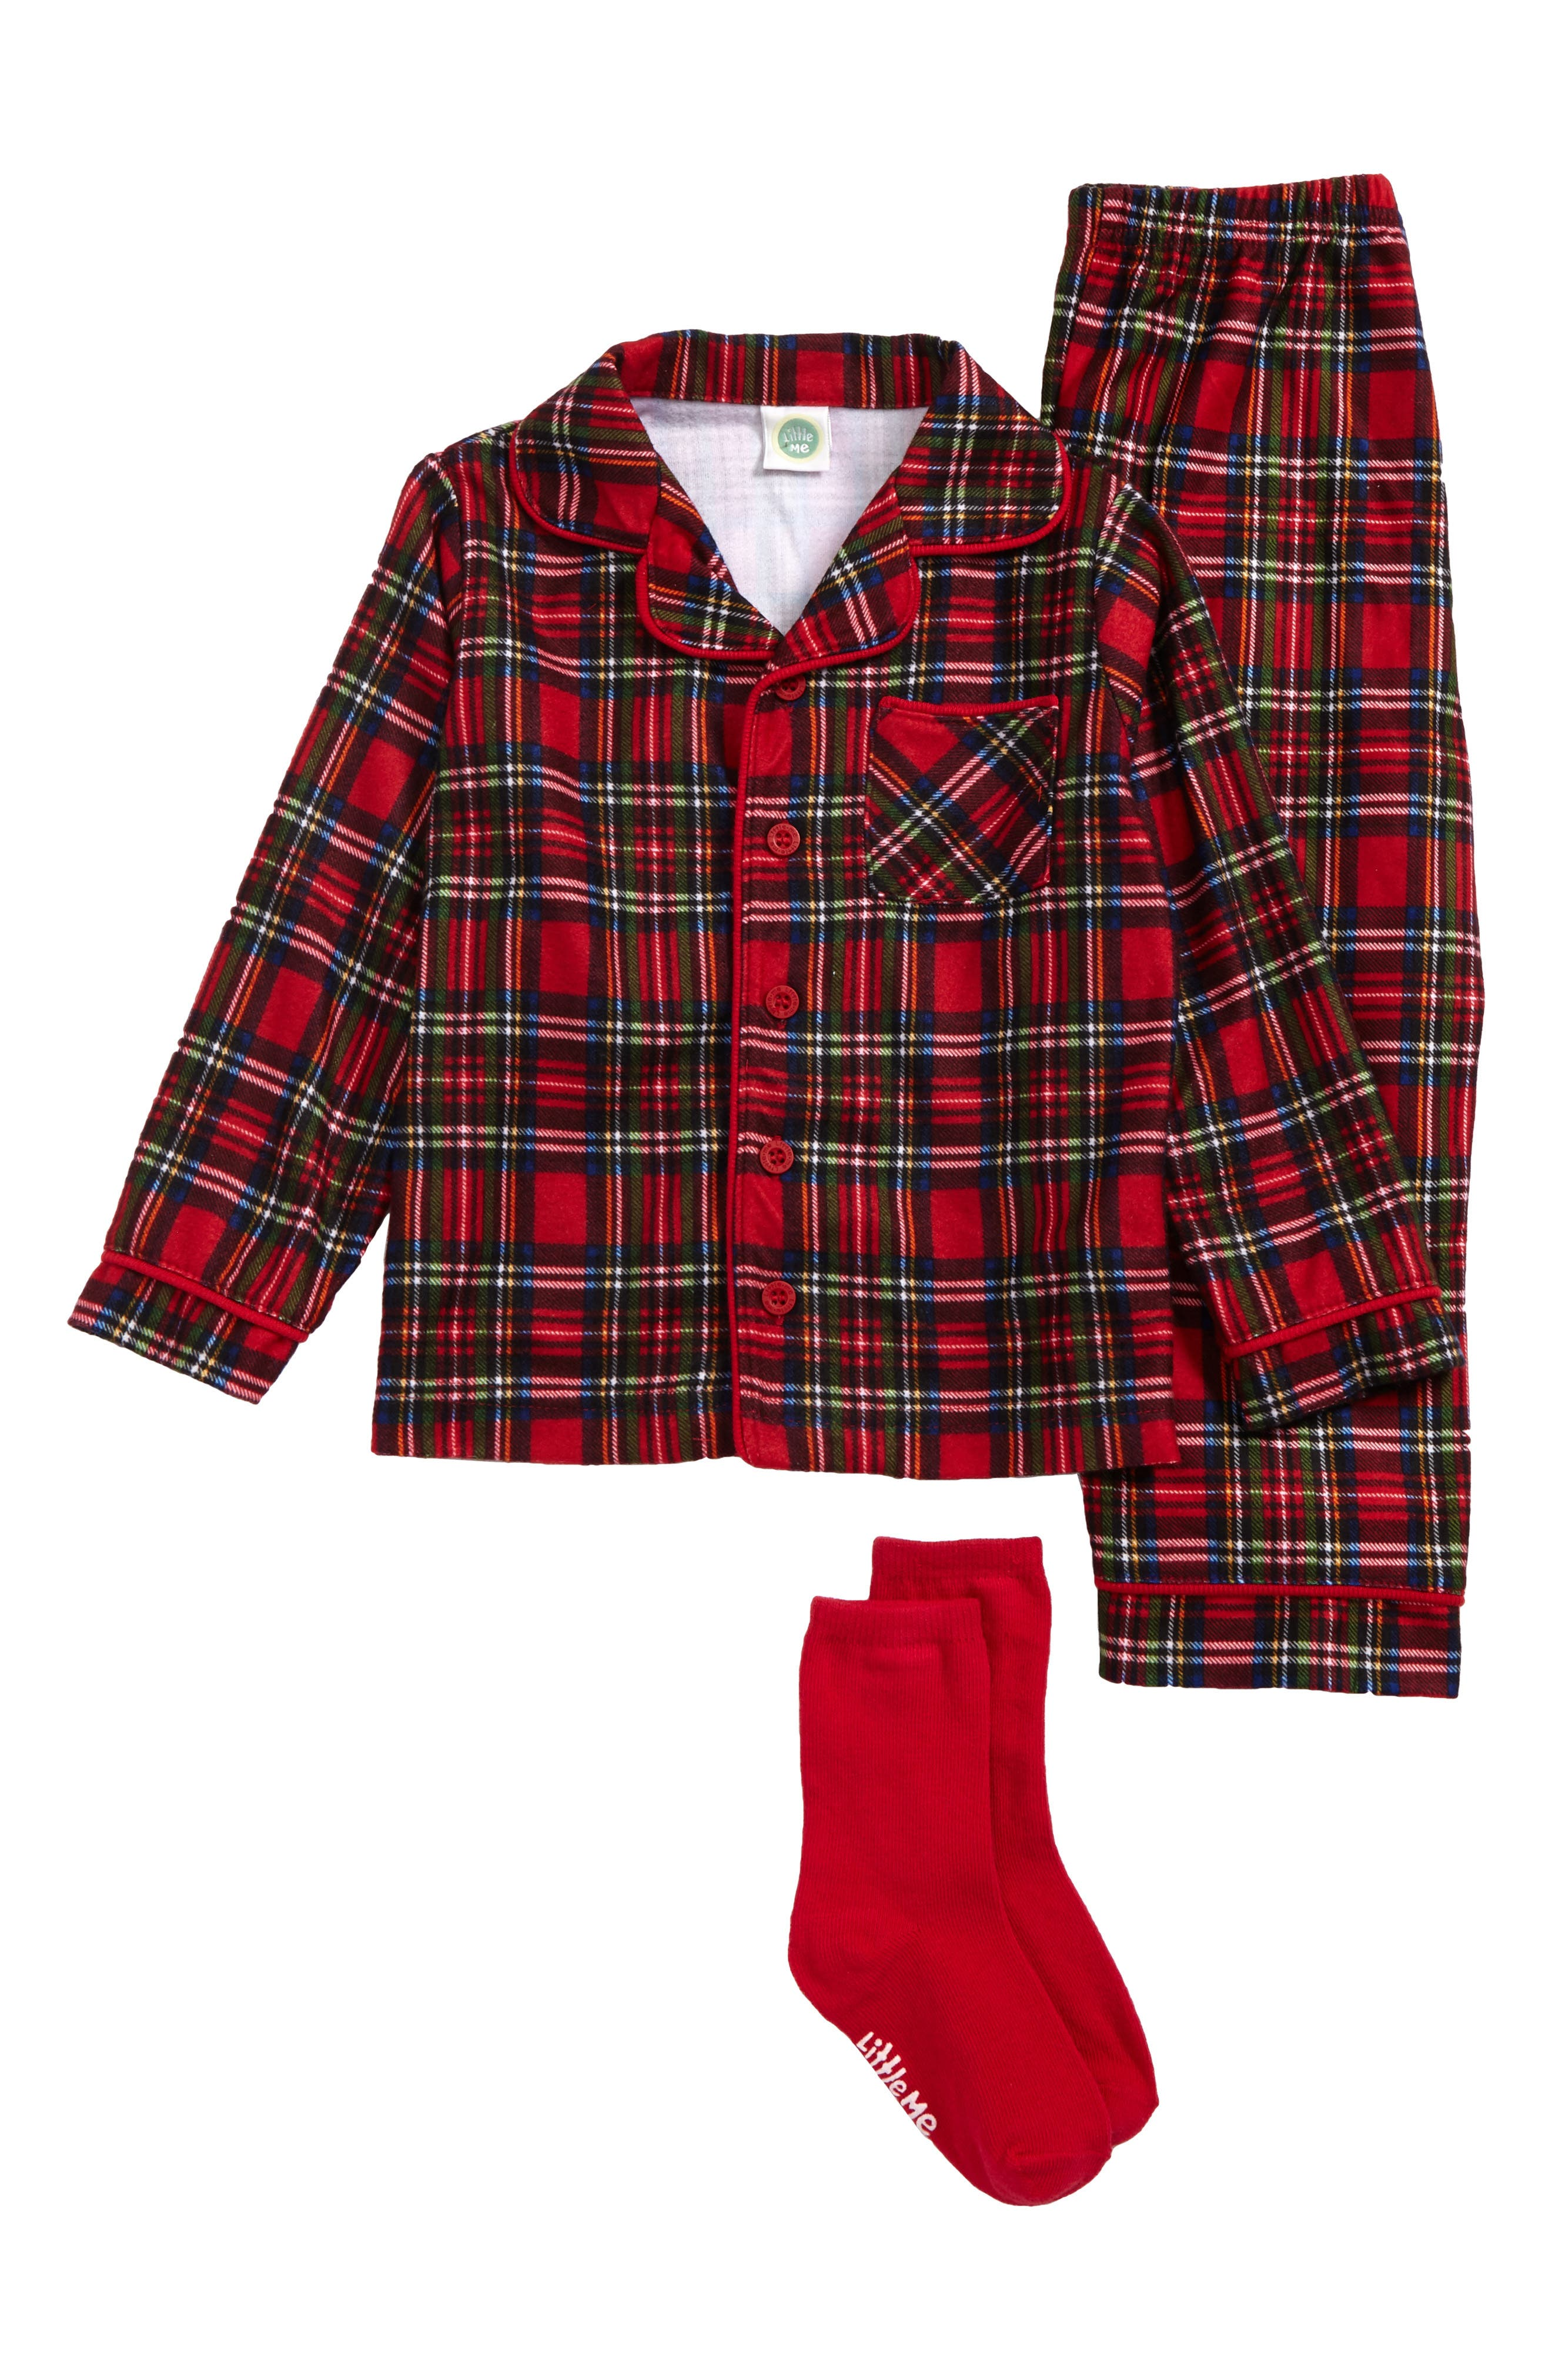 Alternate Image 1 Selected - Little Me Two-Piece Pajamas & Socks Set (Baby Boys)